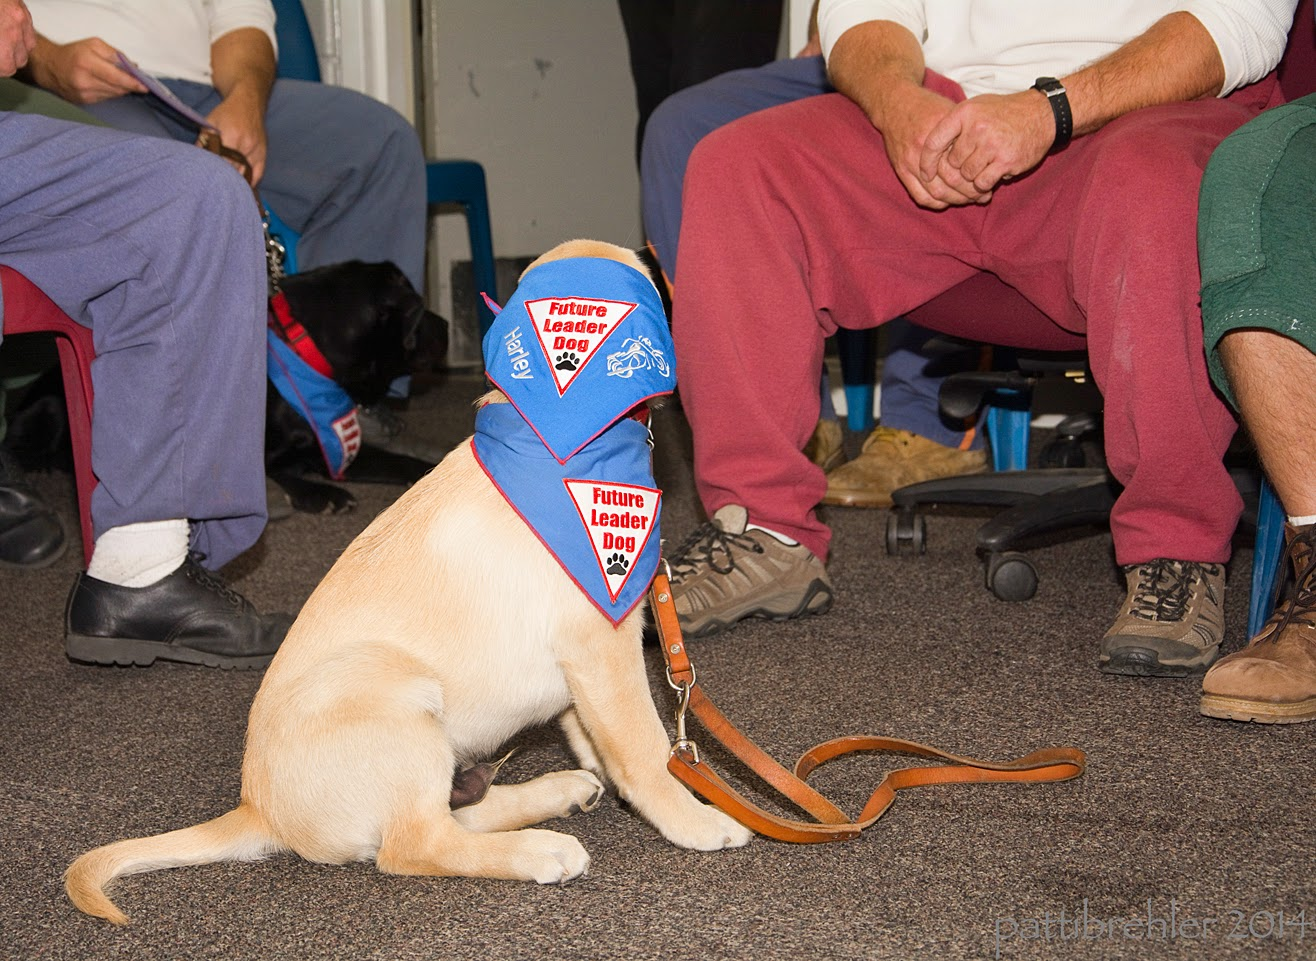 A young golden retriever/lab mix puppy is sitting on a carpted floor, with his head turned away from the camera. His leash is hanging loose on the floor. He has the blue Future Leader Dog bandana around his neck, and a second blue Future Leader dog bandana over his head. In the background are the legs of several men sitting in chairs.